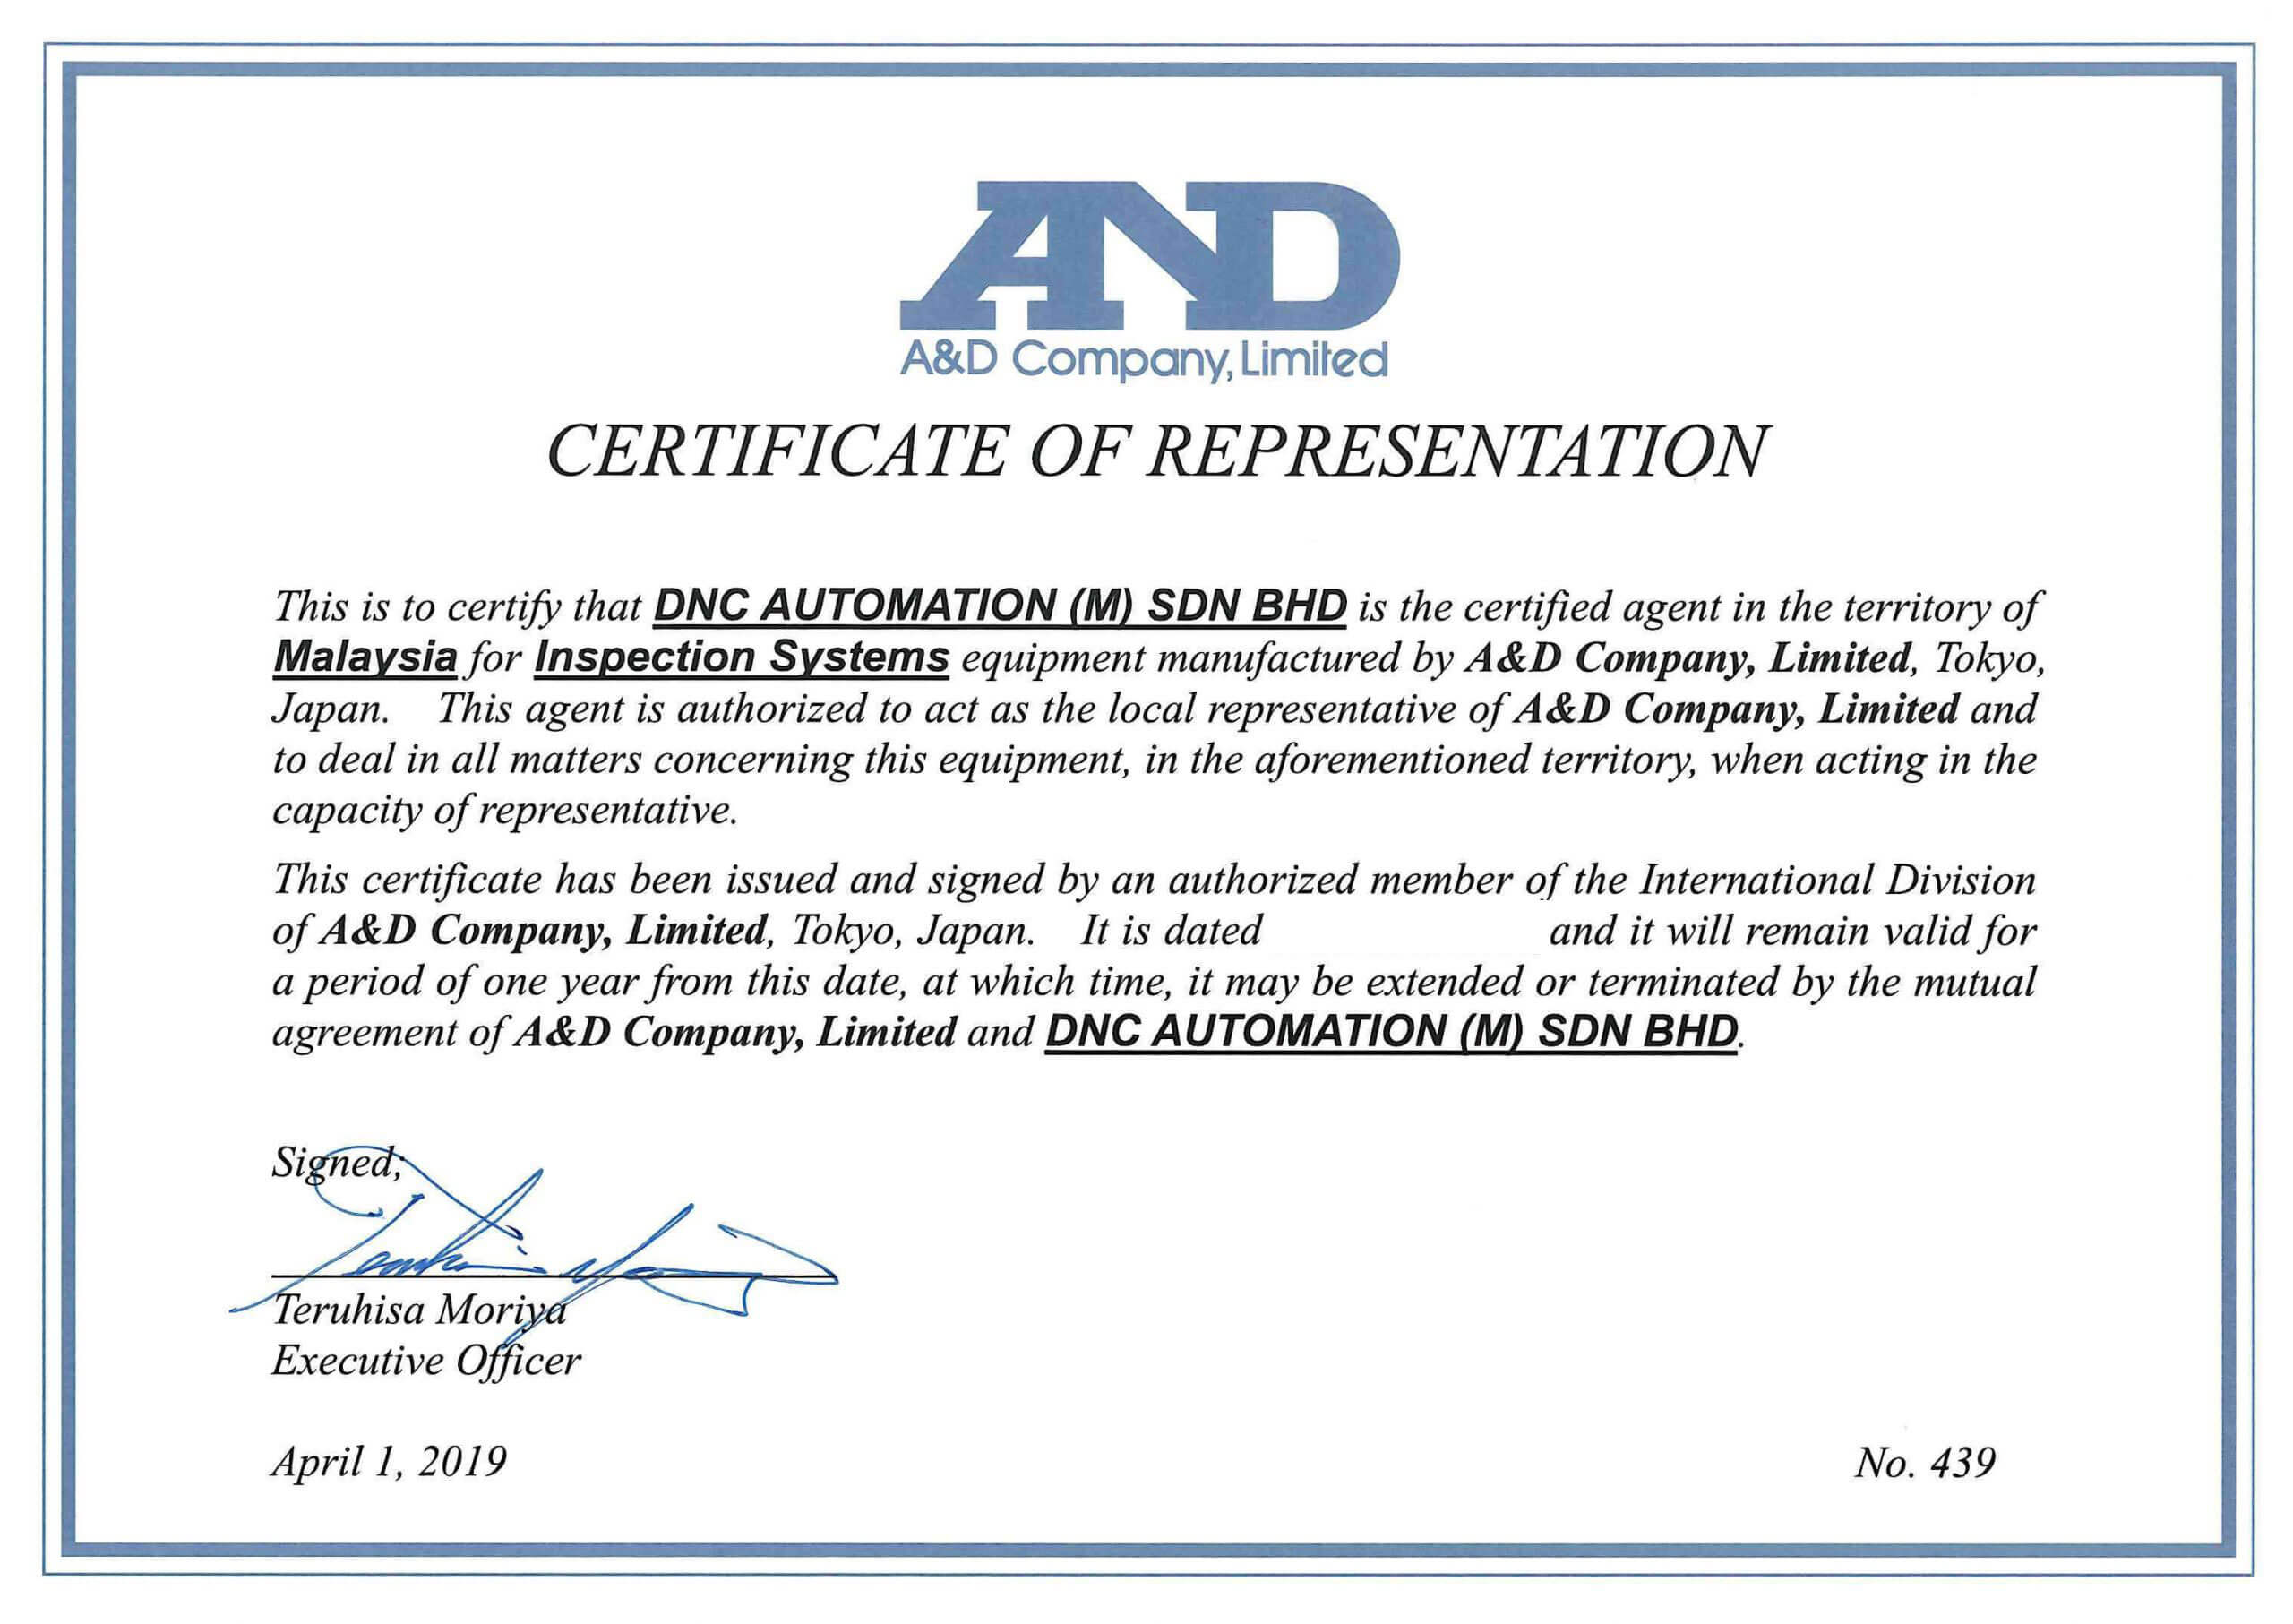 OFFICIAL CERTIFIED AGENT FOR A&D